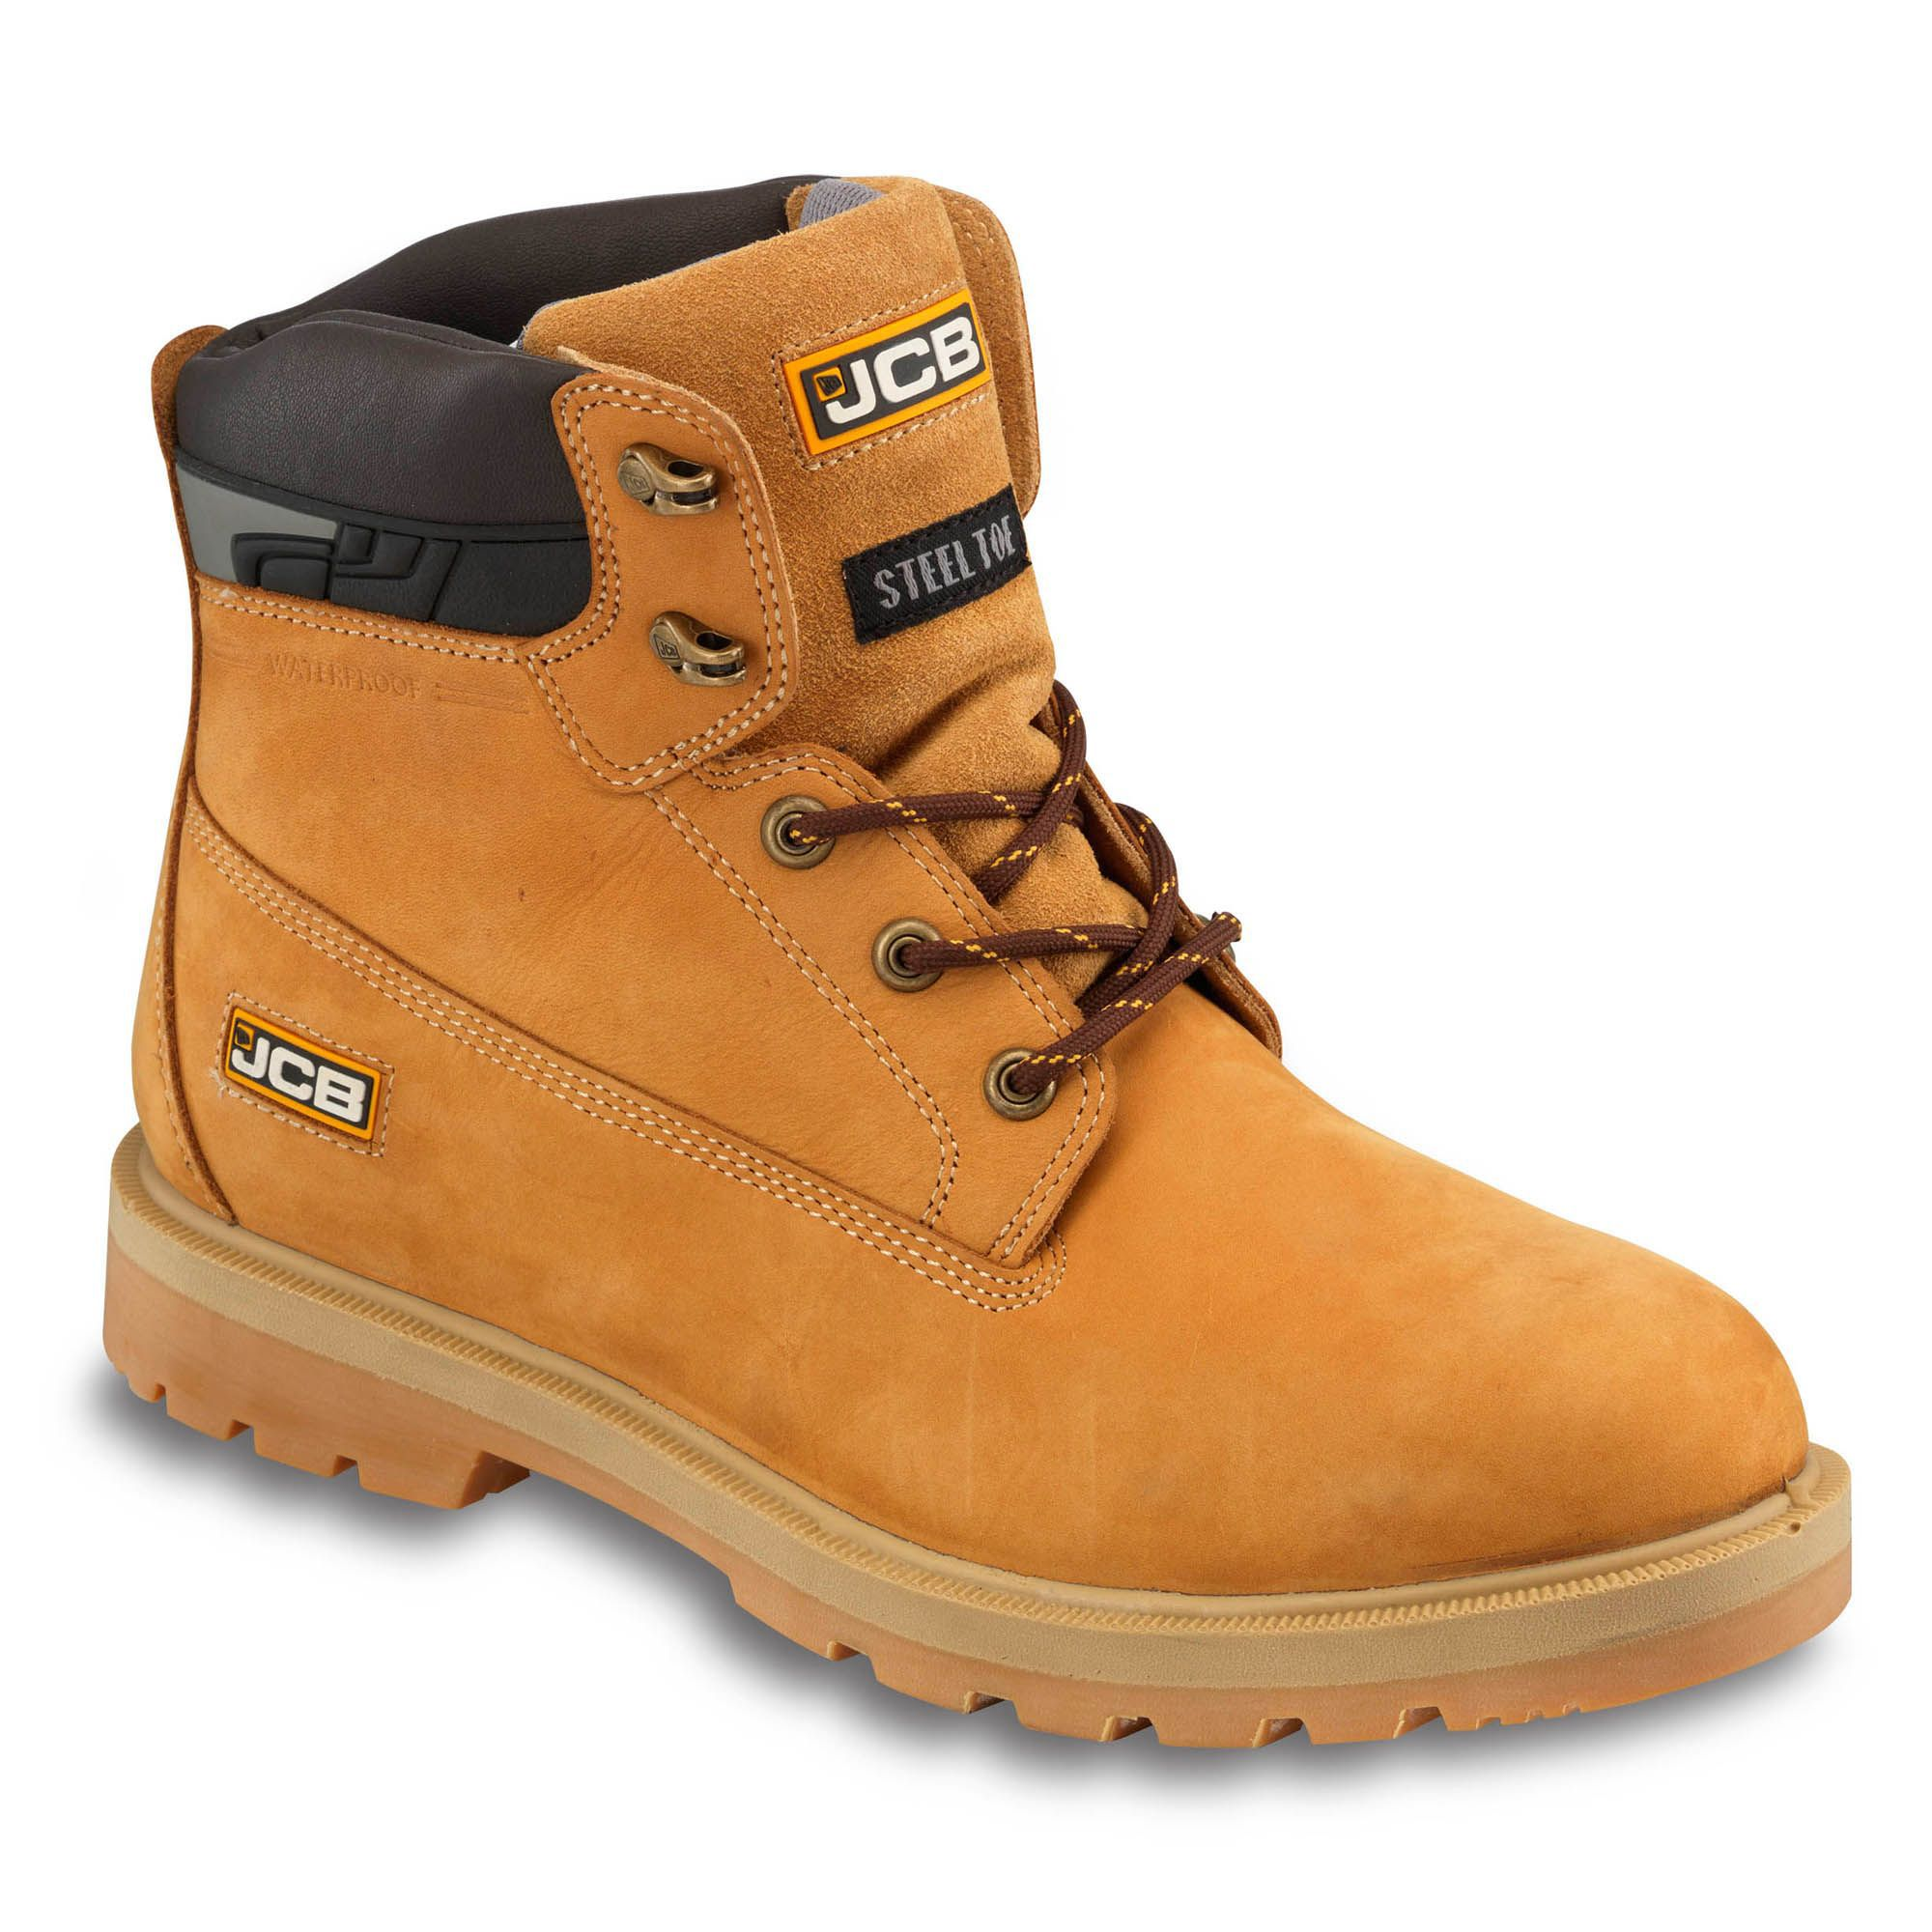 Jcb Honey Protector Safety Boots, Size 13